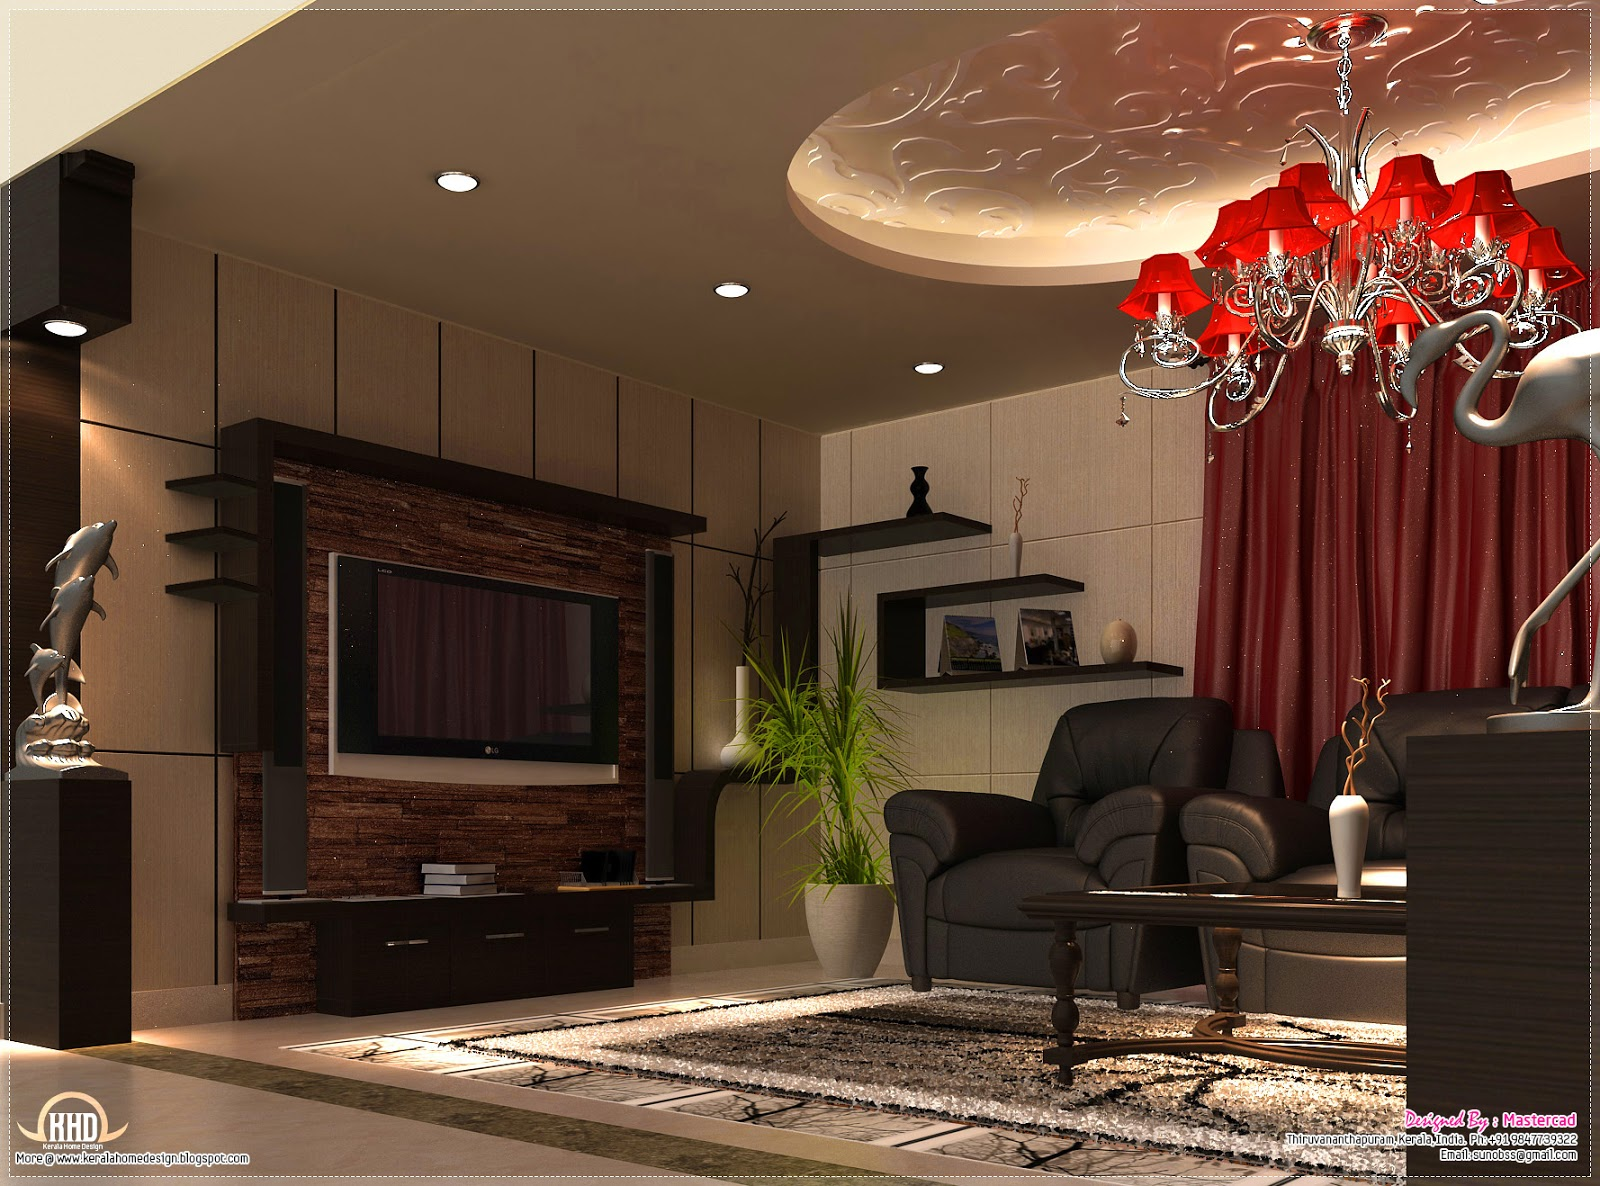 Home Interior Design Ideas Kerala: Interior Design Ideas